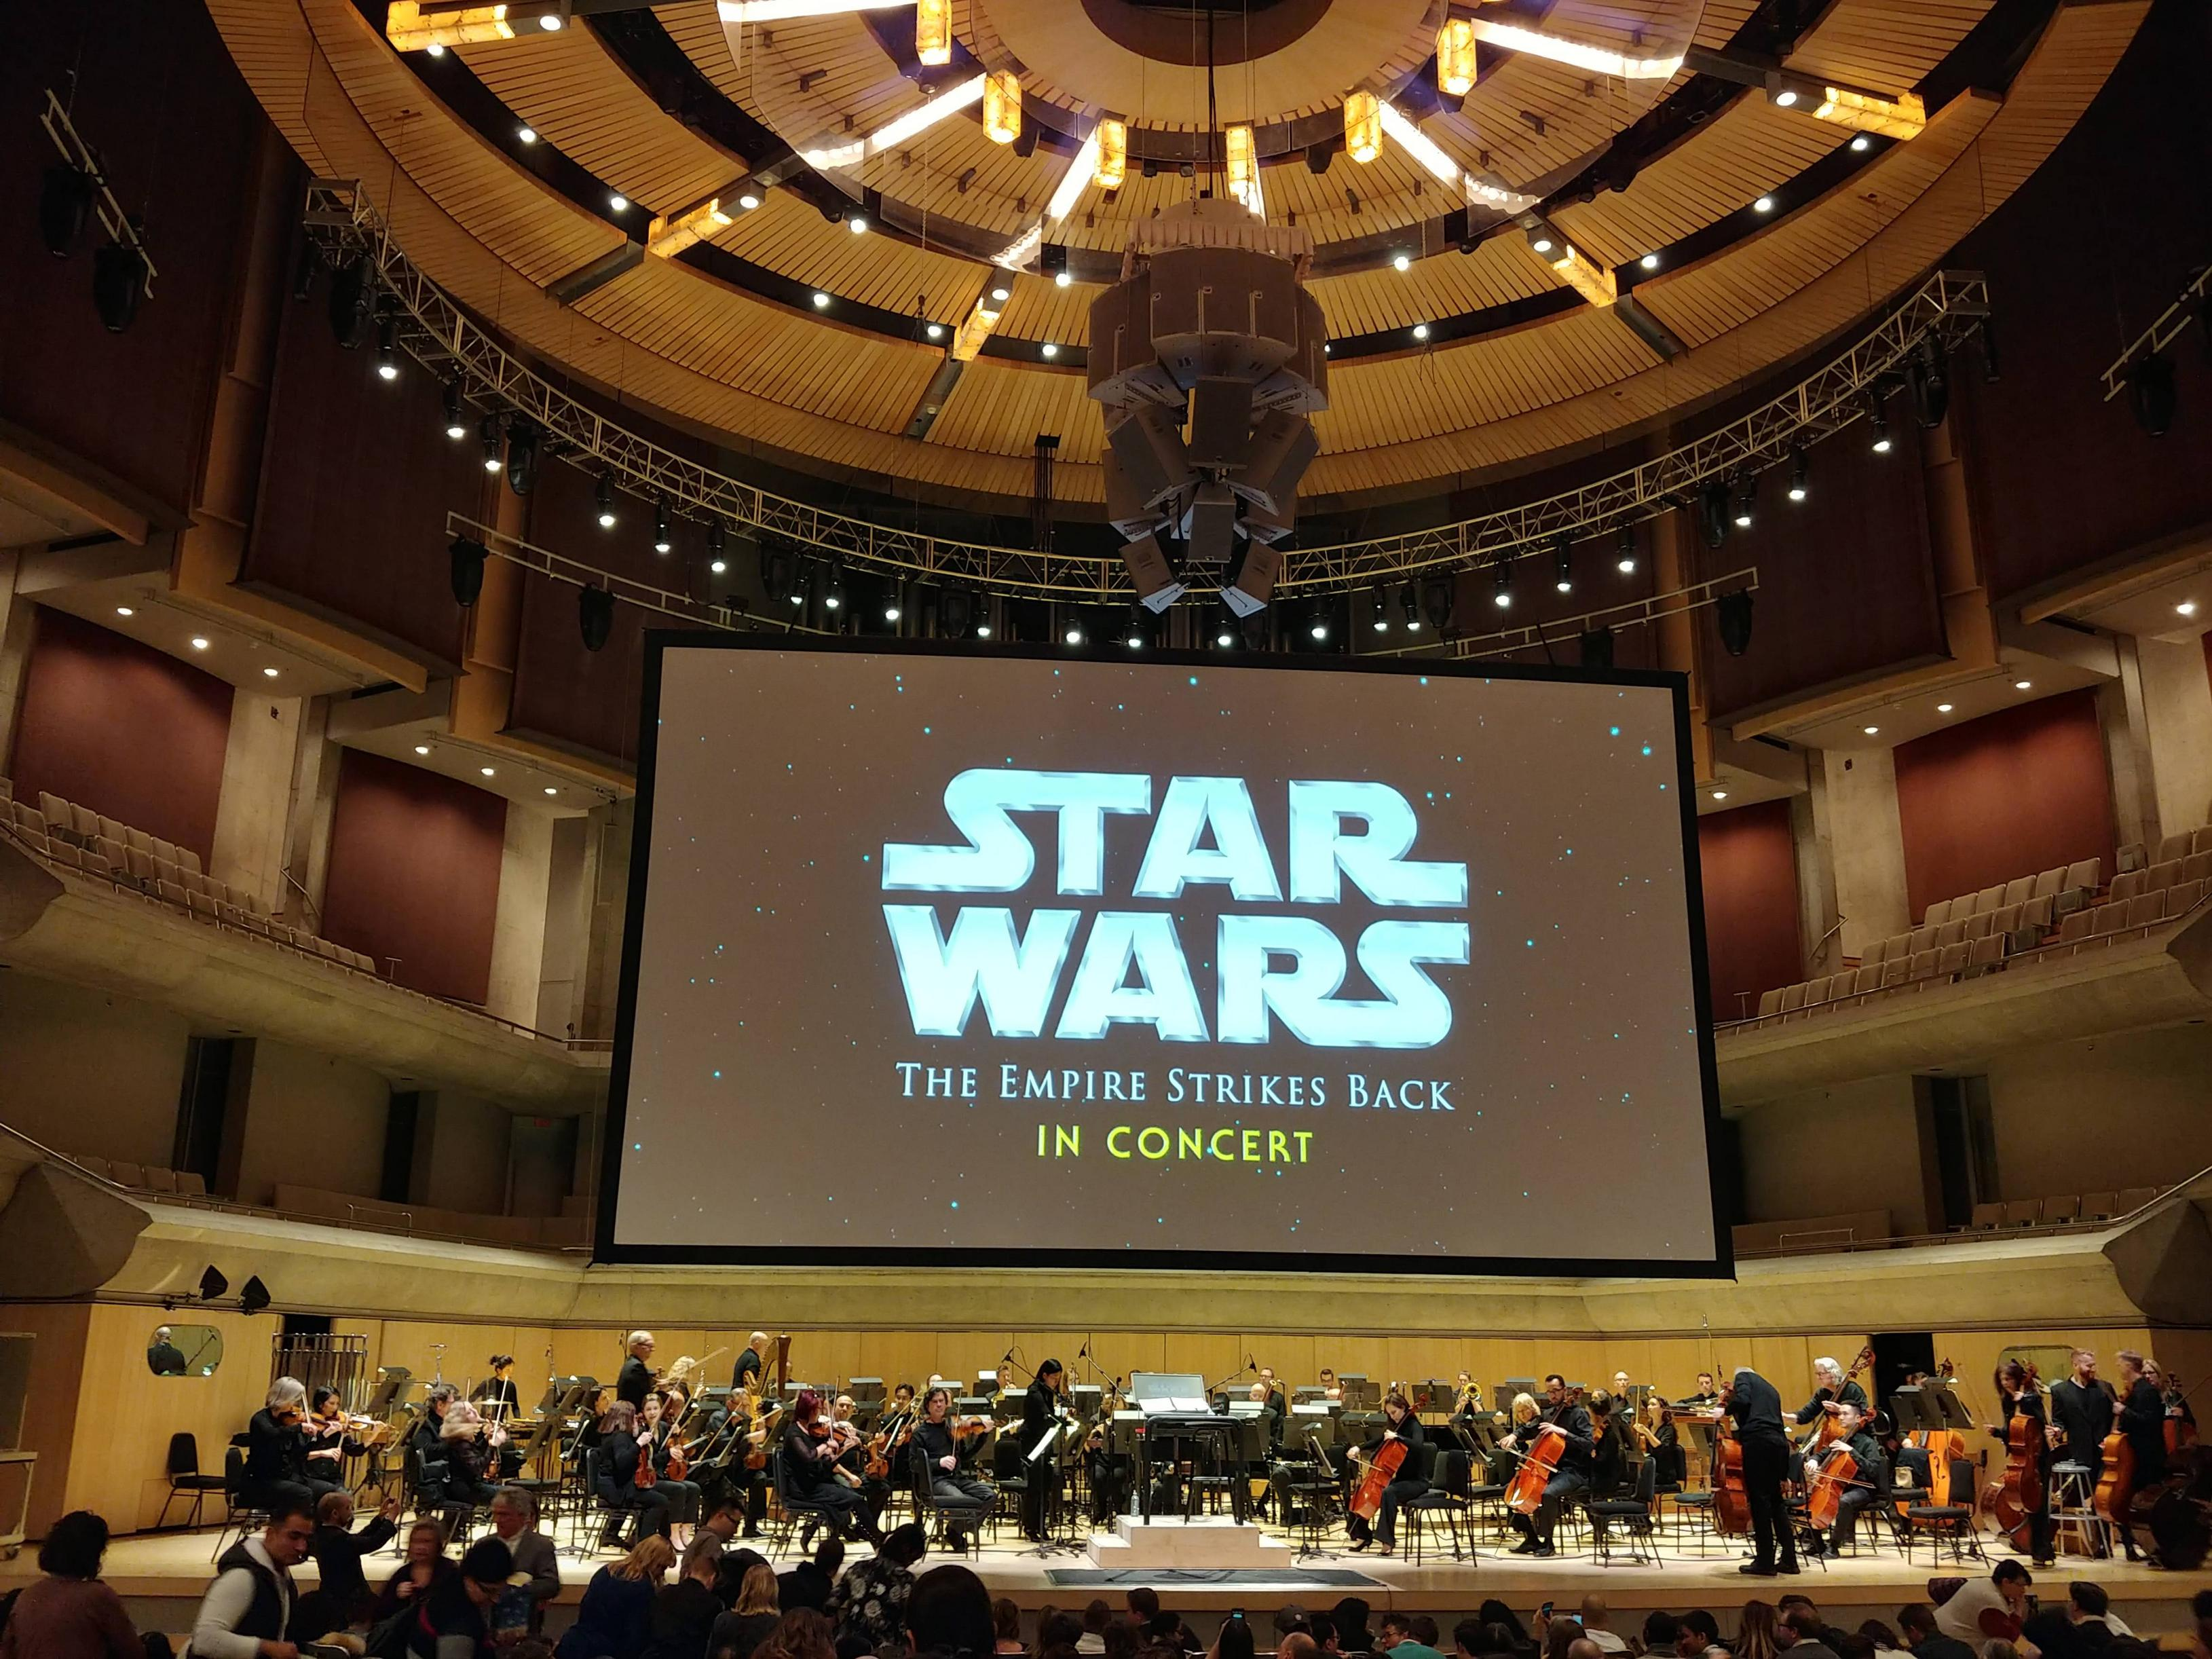 I watched The Empire Strikes Back with a live orchestra! Hearing the score in person left me awestruck